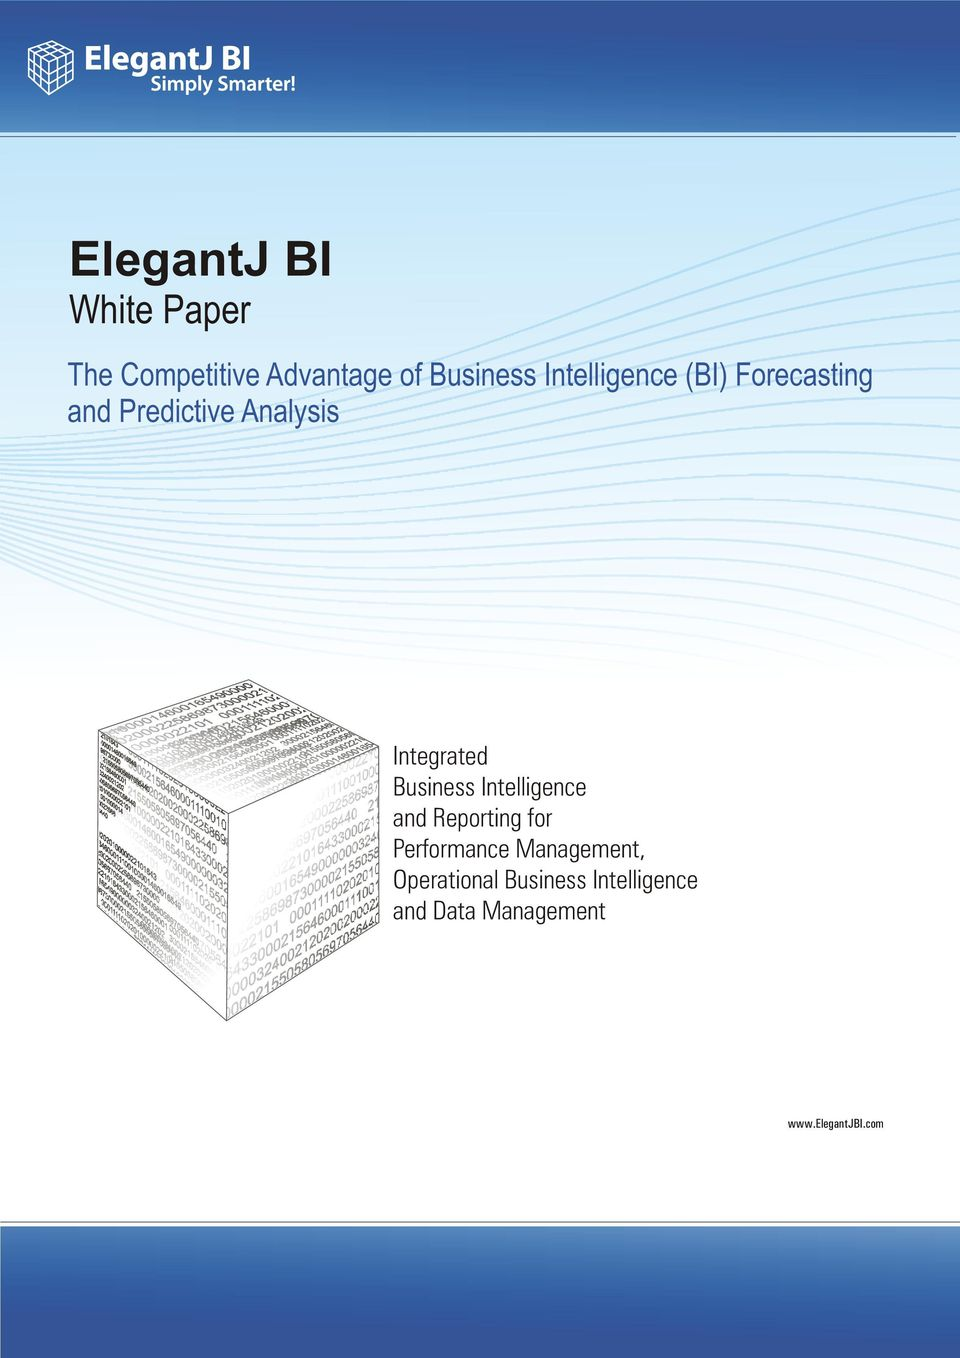 Business Intelligence and Reporting for Performance Management,